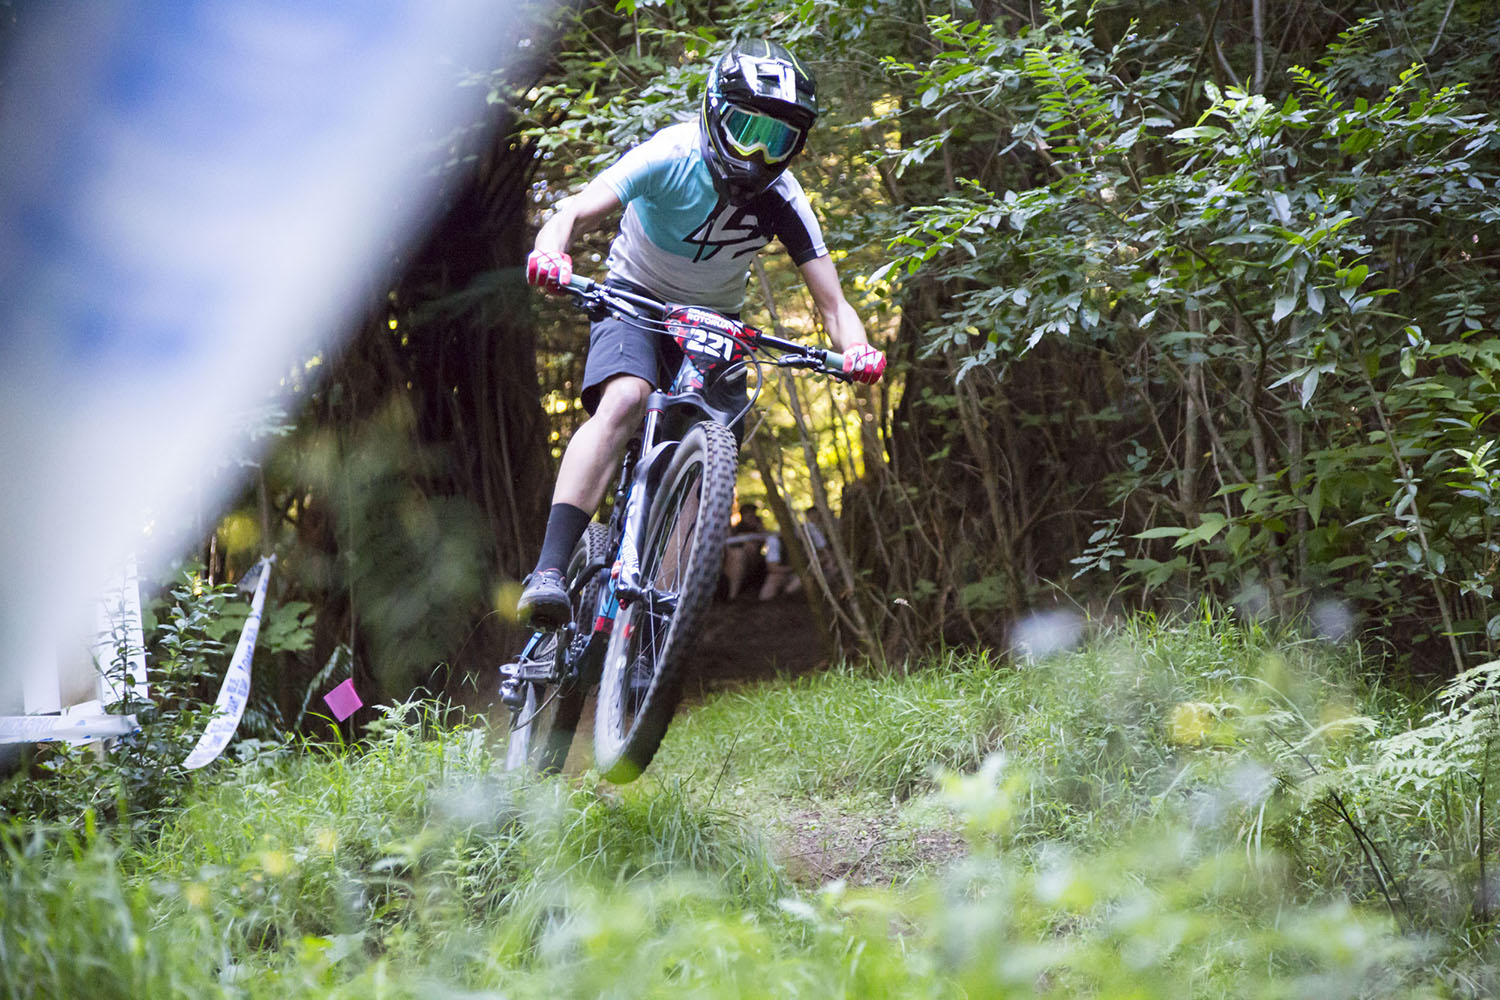 Rae will be hoping to take her Crankworx form to the EWS this winter